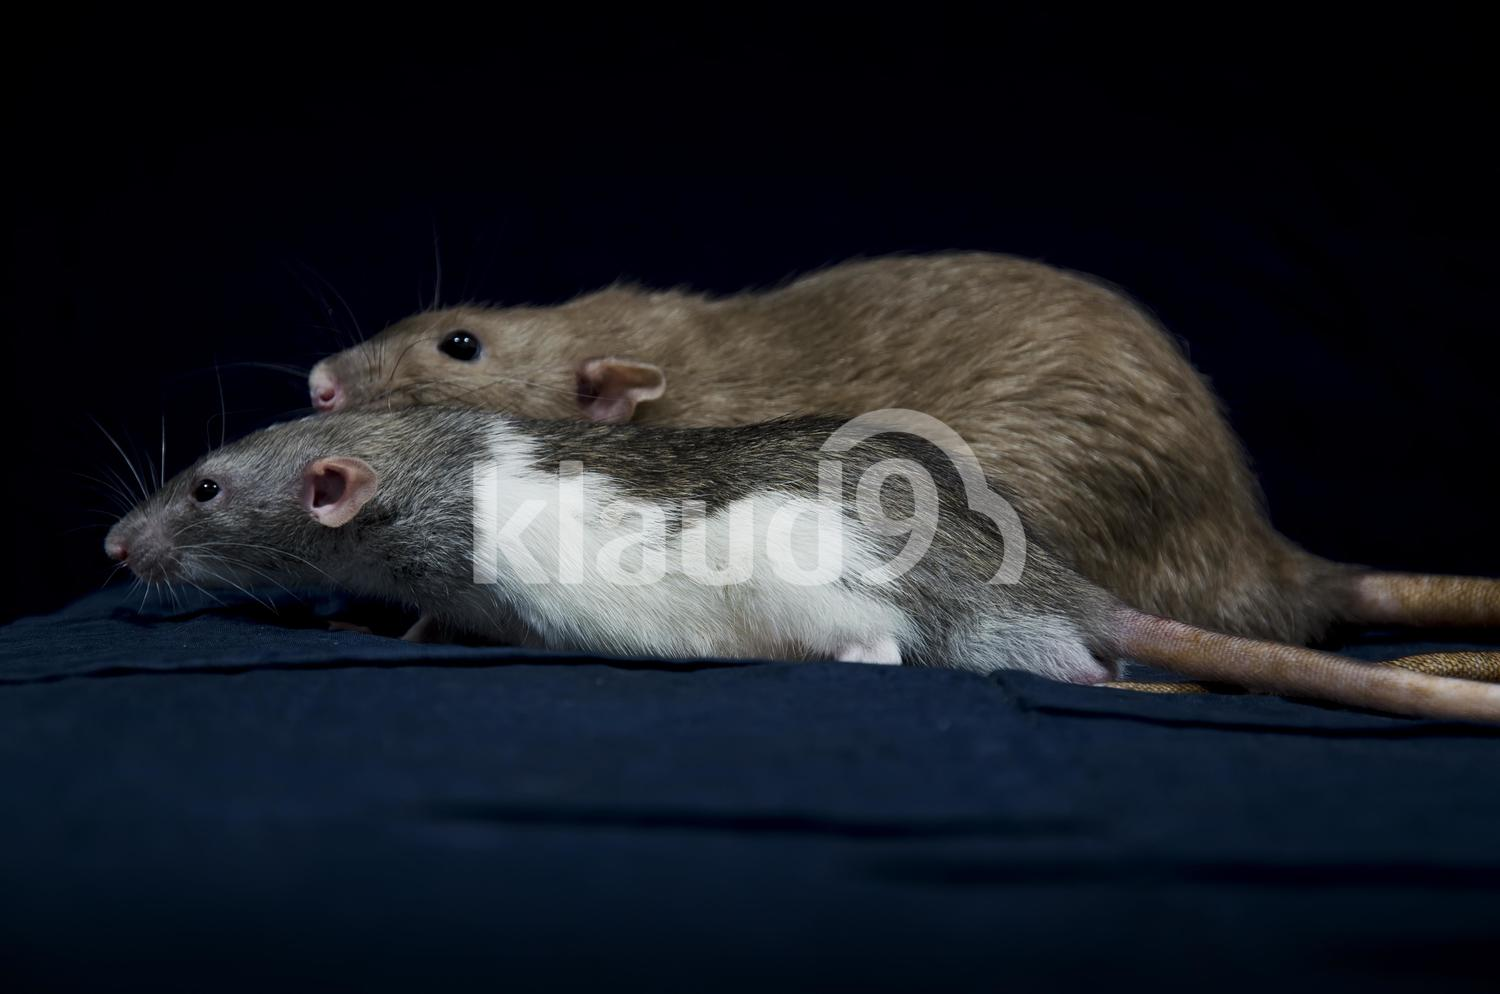 Two rats racing